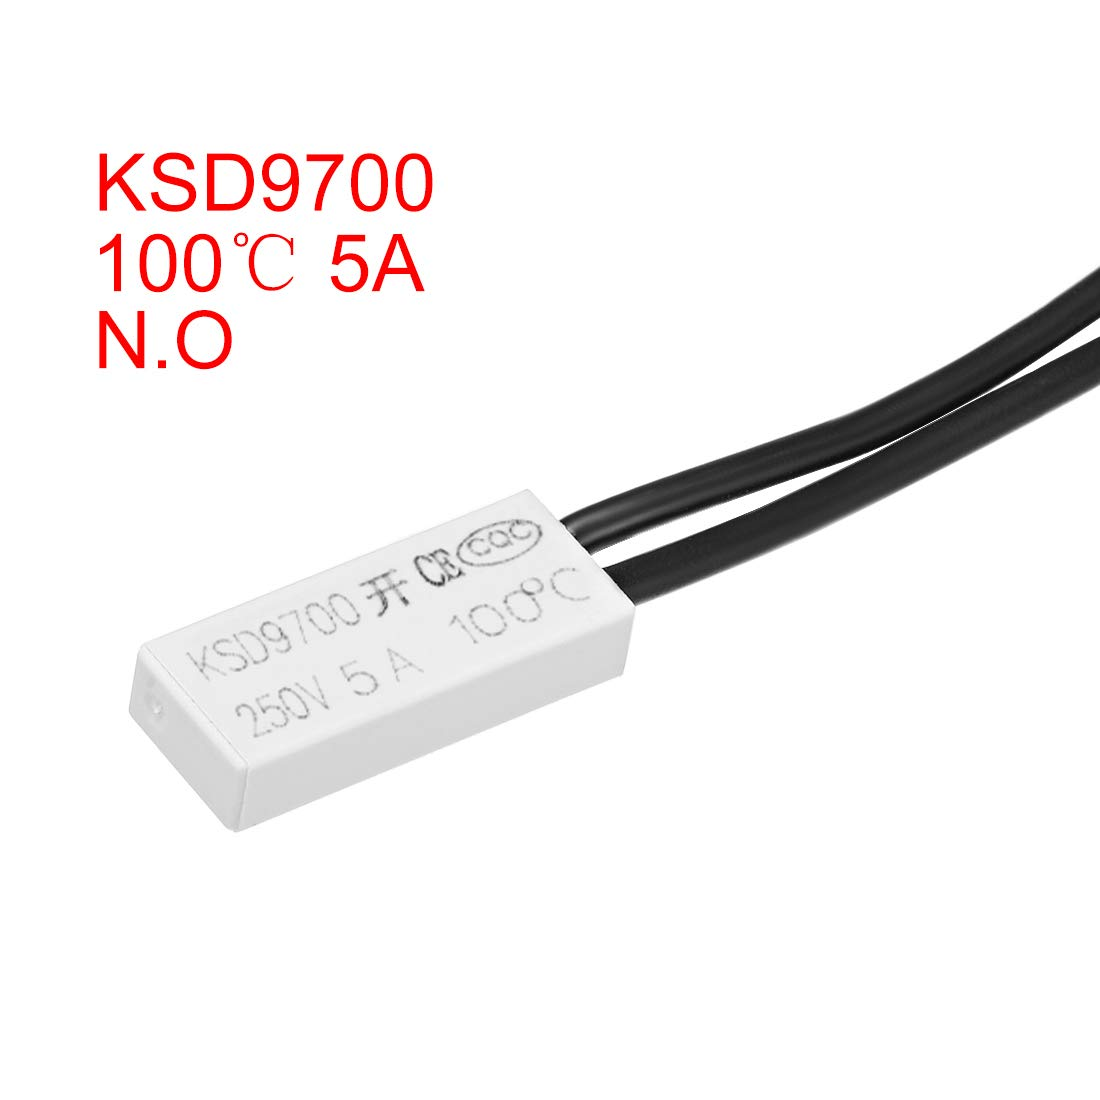 uxcell KSD9700 Thermostat 100℃ Normally Open Temperature Switch N.O 5A Thermal Switch Bimetal Temperature Controller 2pcs